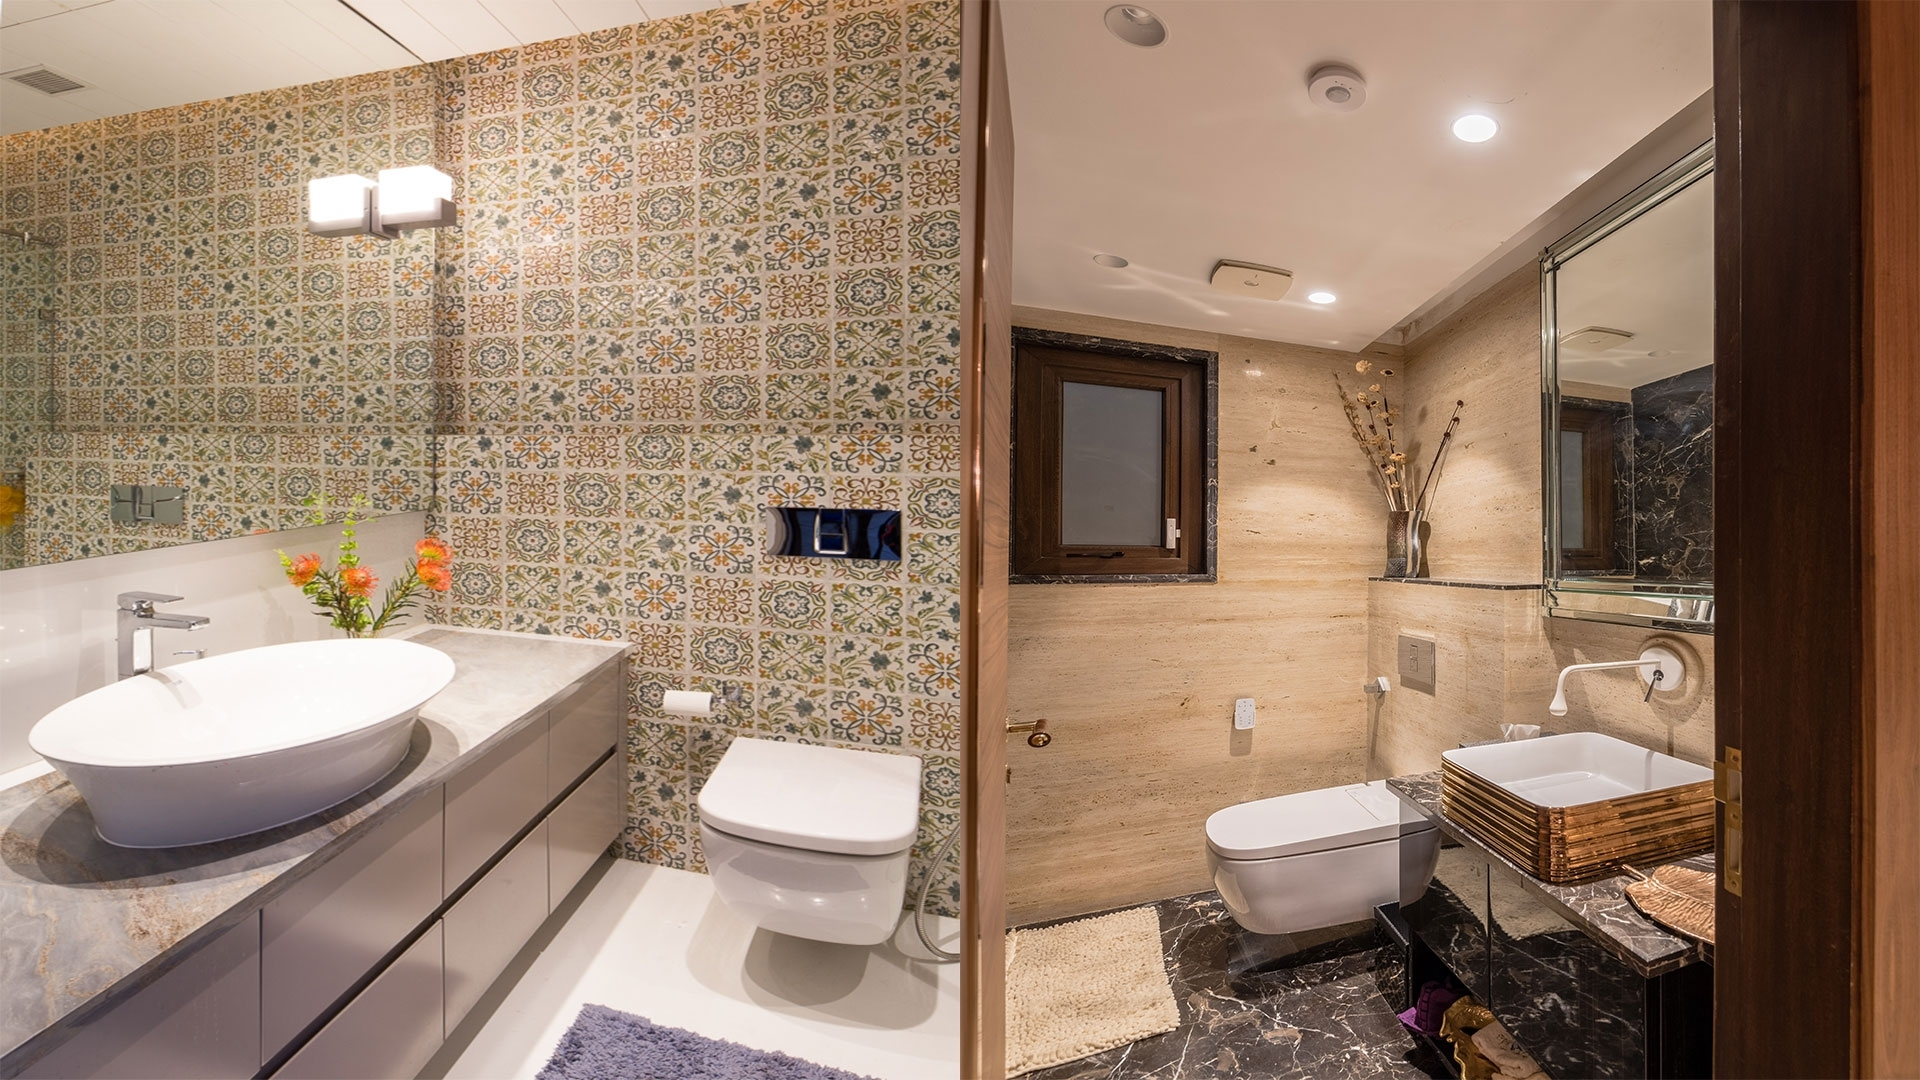 Bathroom Design: Experts Revel Ways To Design This Space On 20+ Bathroom Tiles For Small Bathrooms India Inspirations